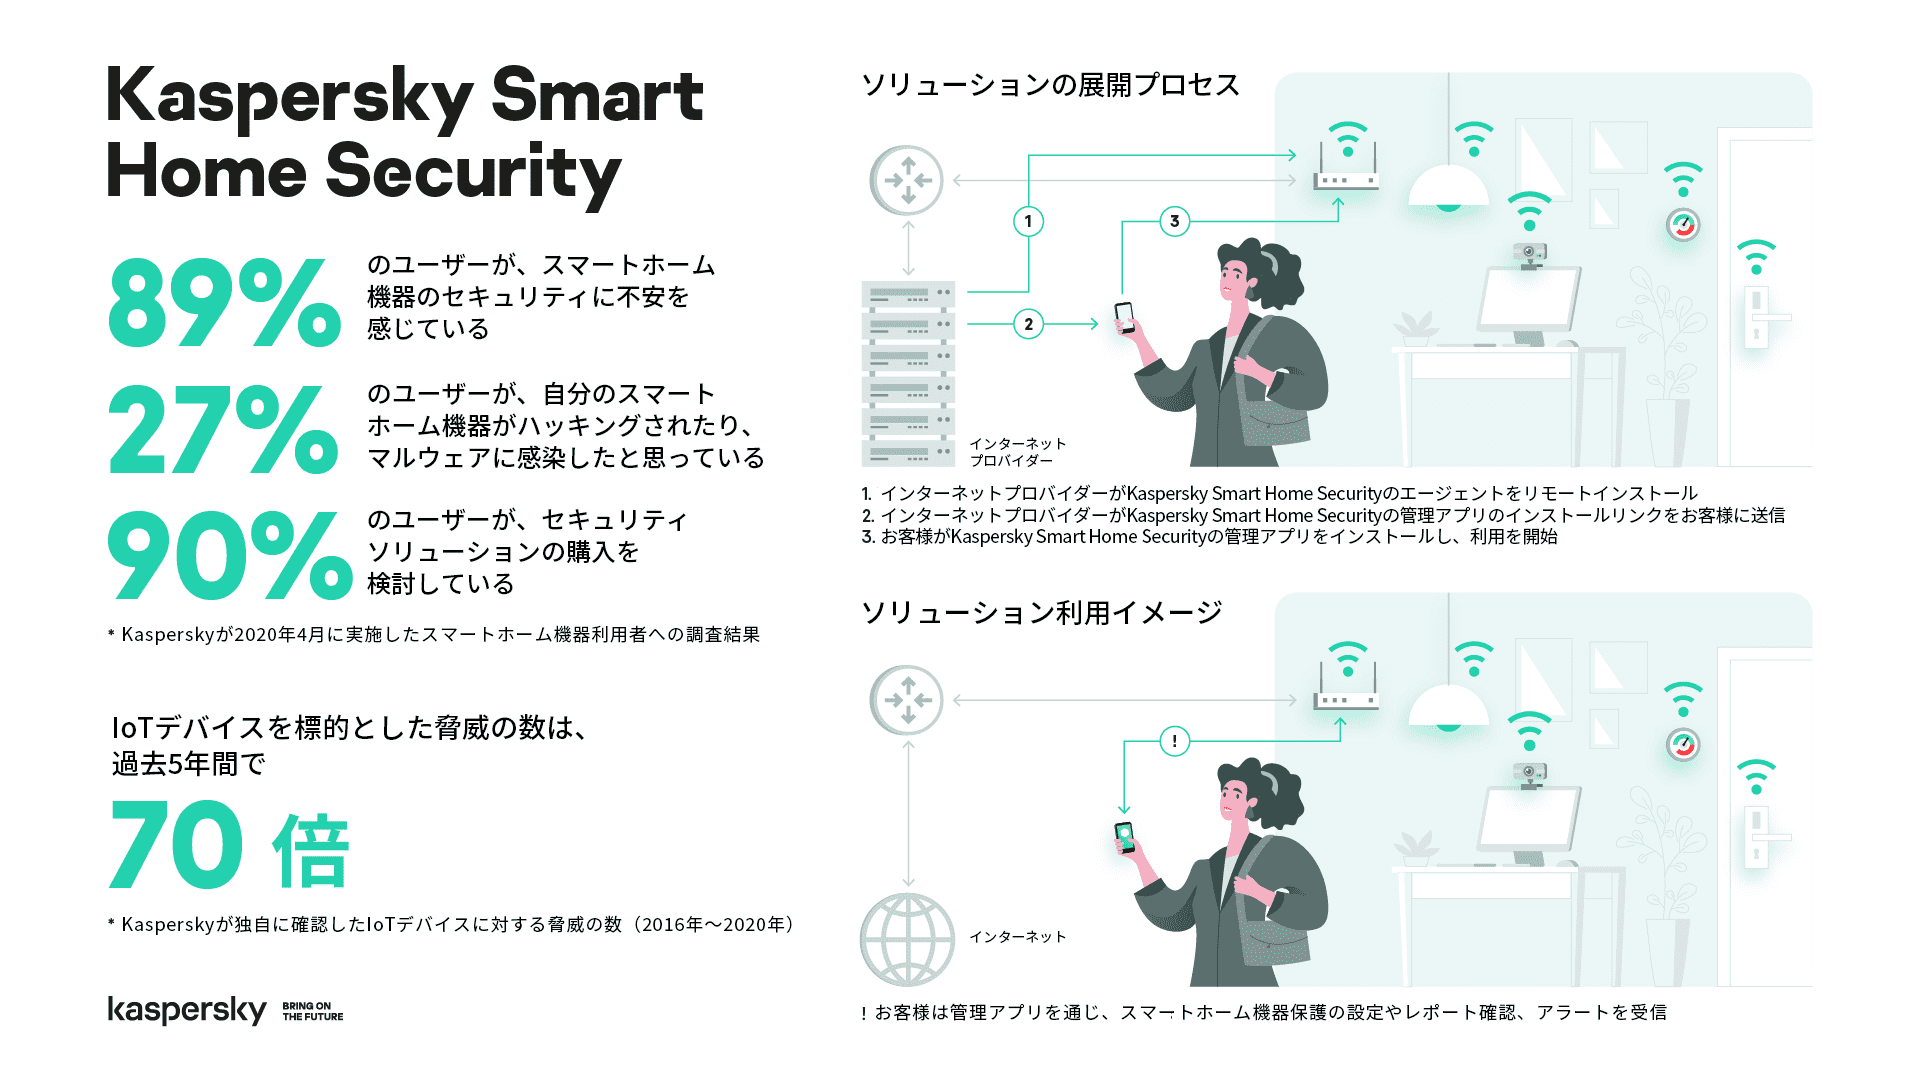 KL-SmartHomeSecurity-1.png